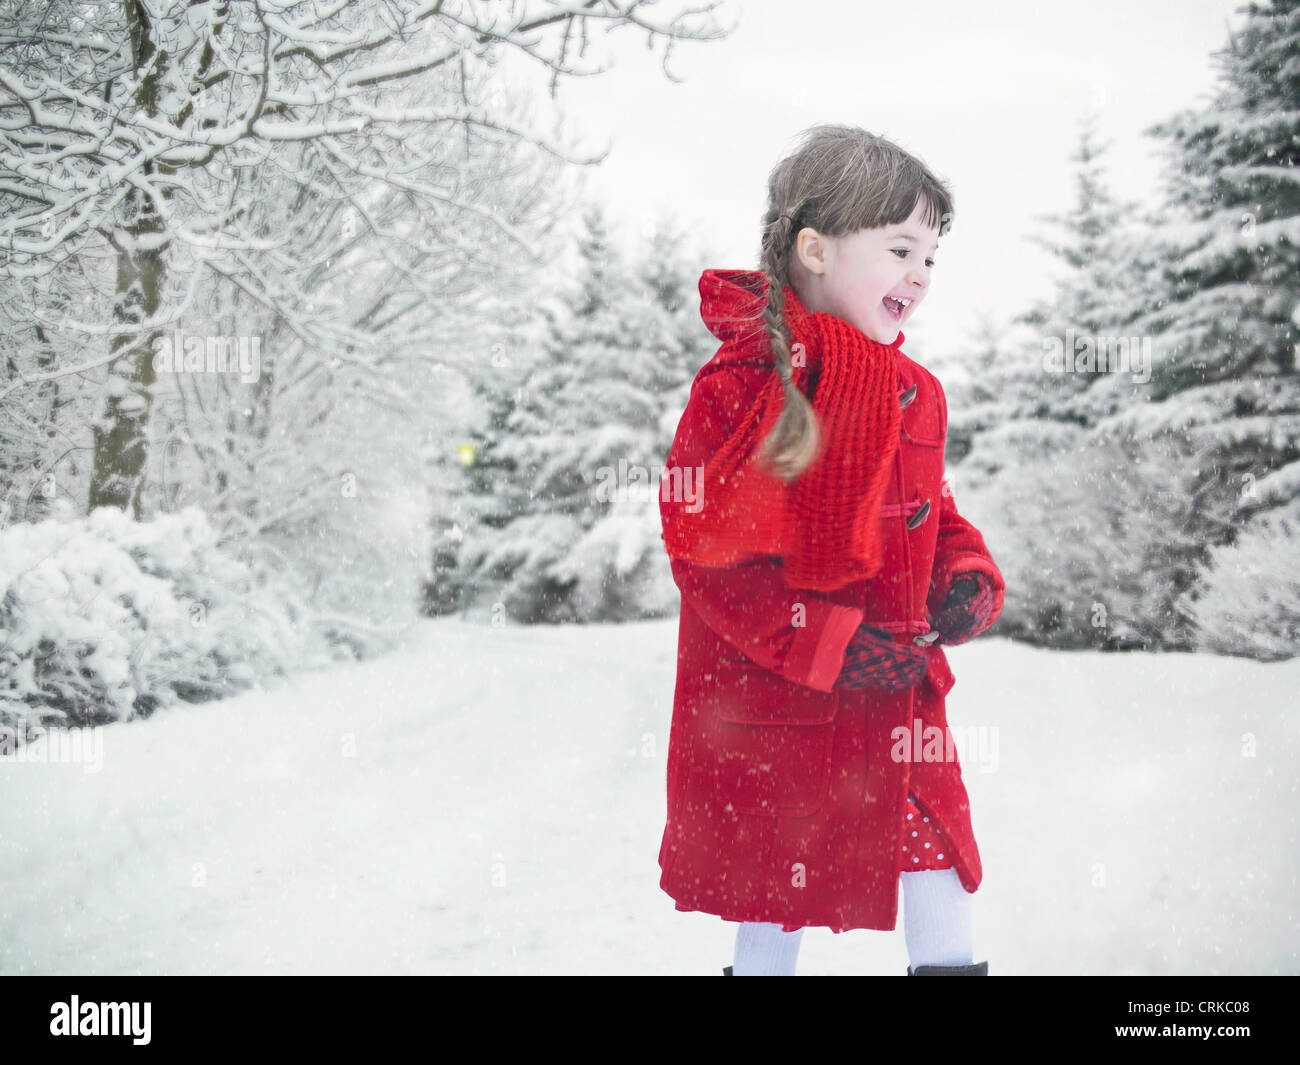 Smiling girl playing in snow - Stock Image